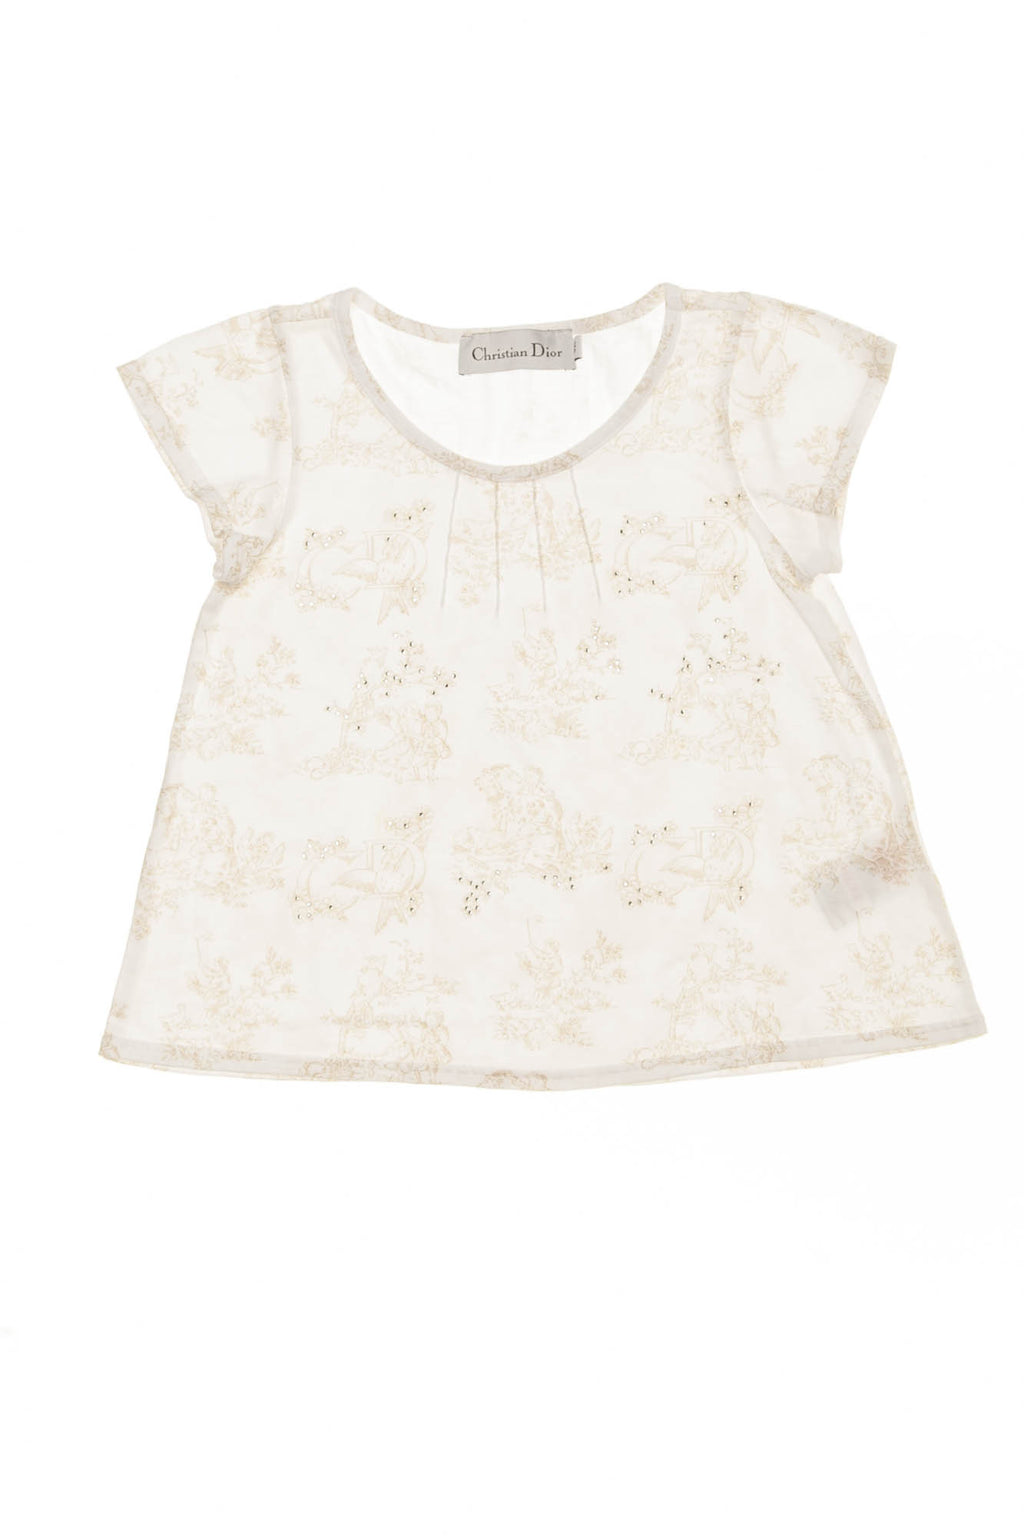 Christian Dior - White Short Sleeve Top with Flowers -